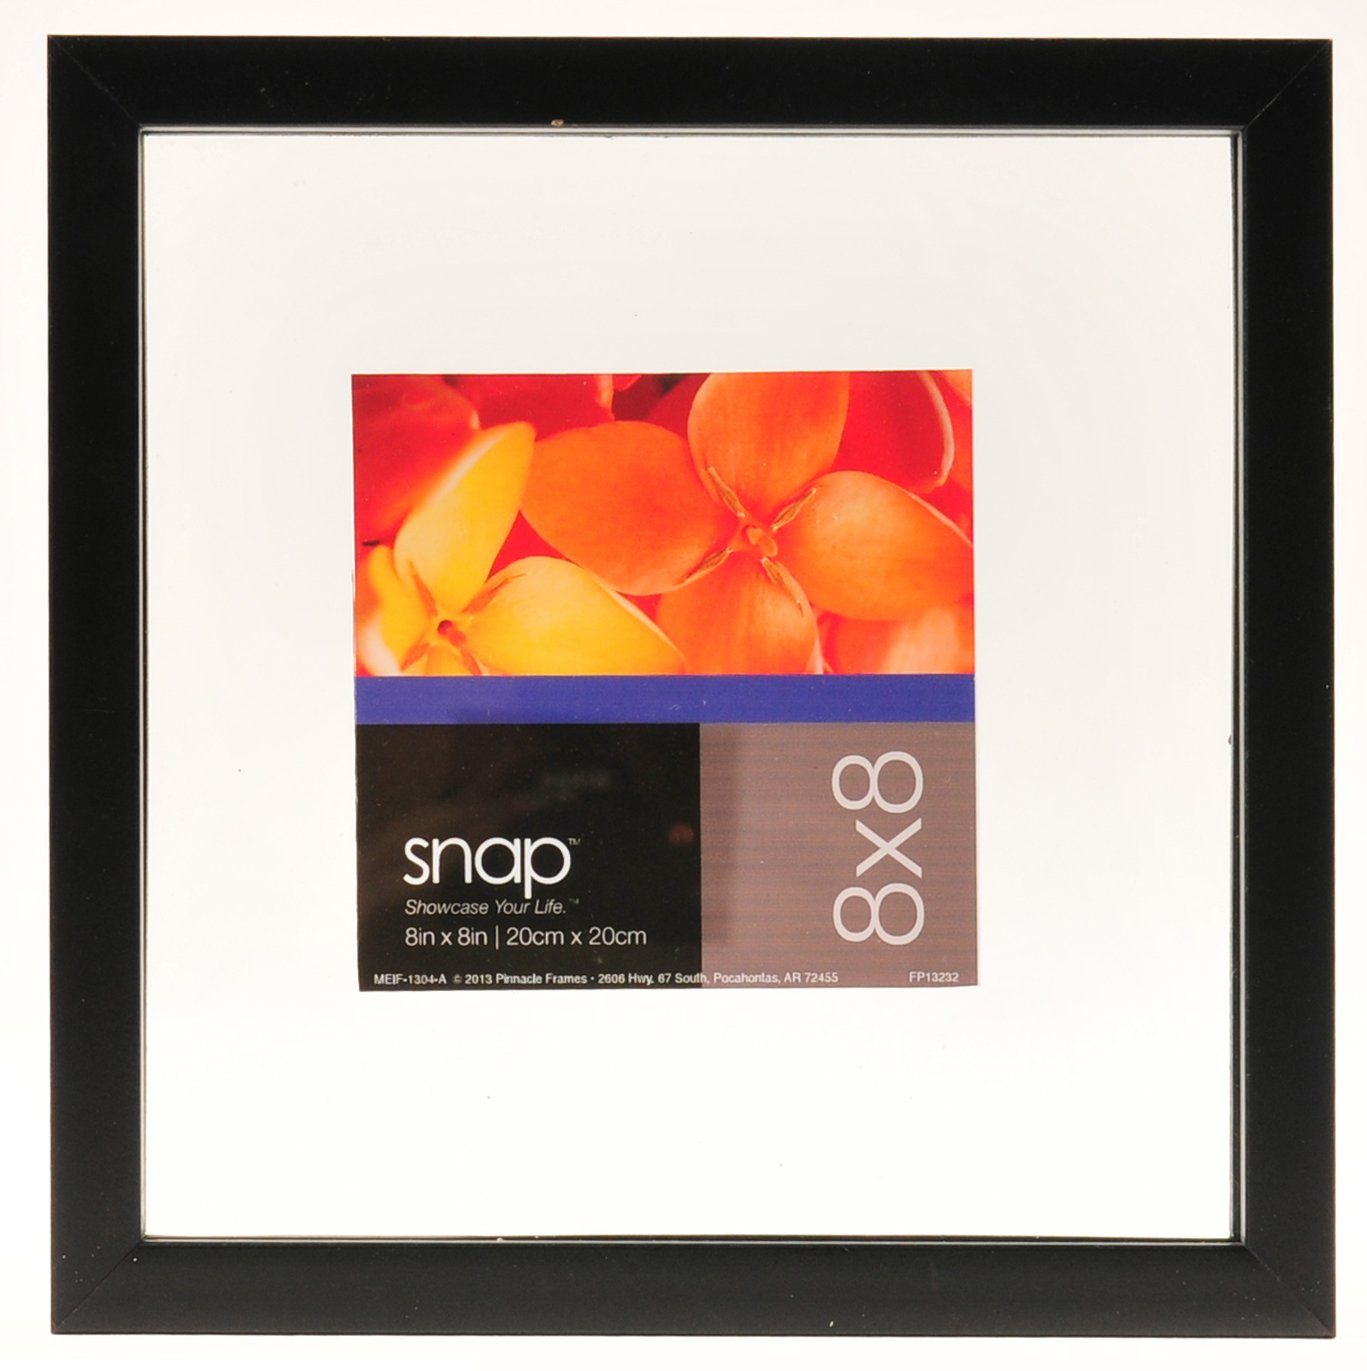 Snap 8x8 Black Float Frame for Floating Display of 6x6 Image by Snap